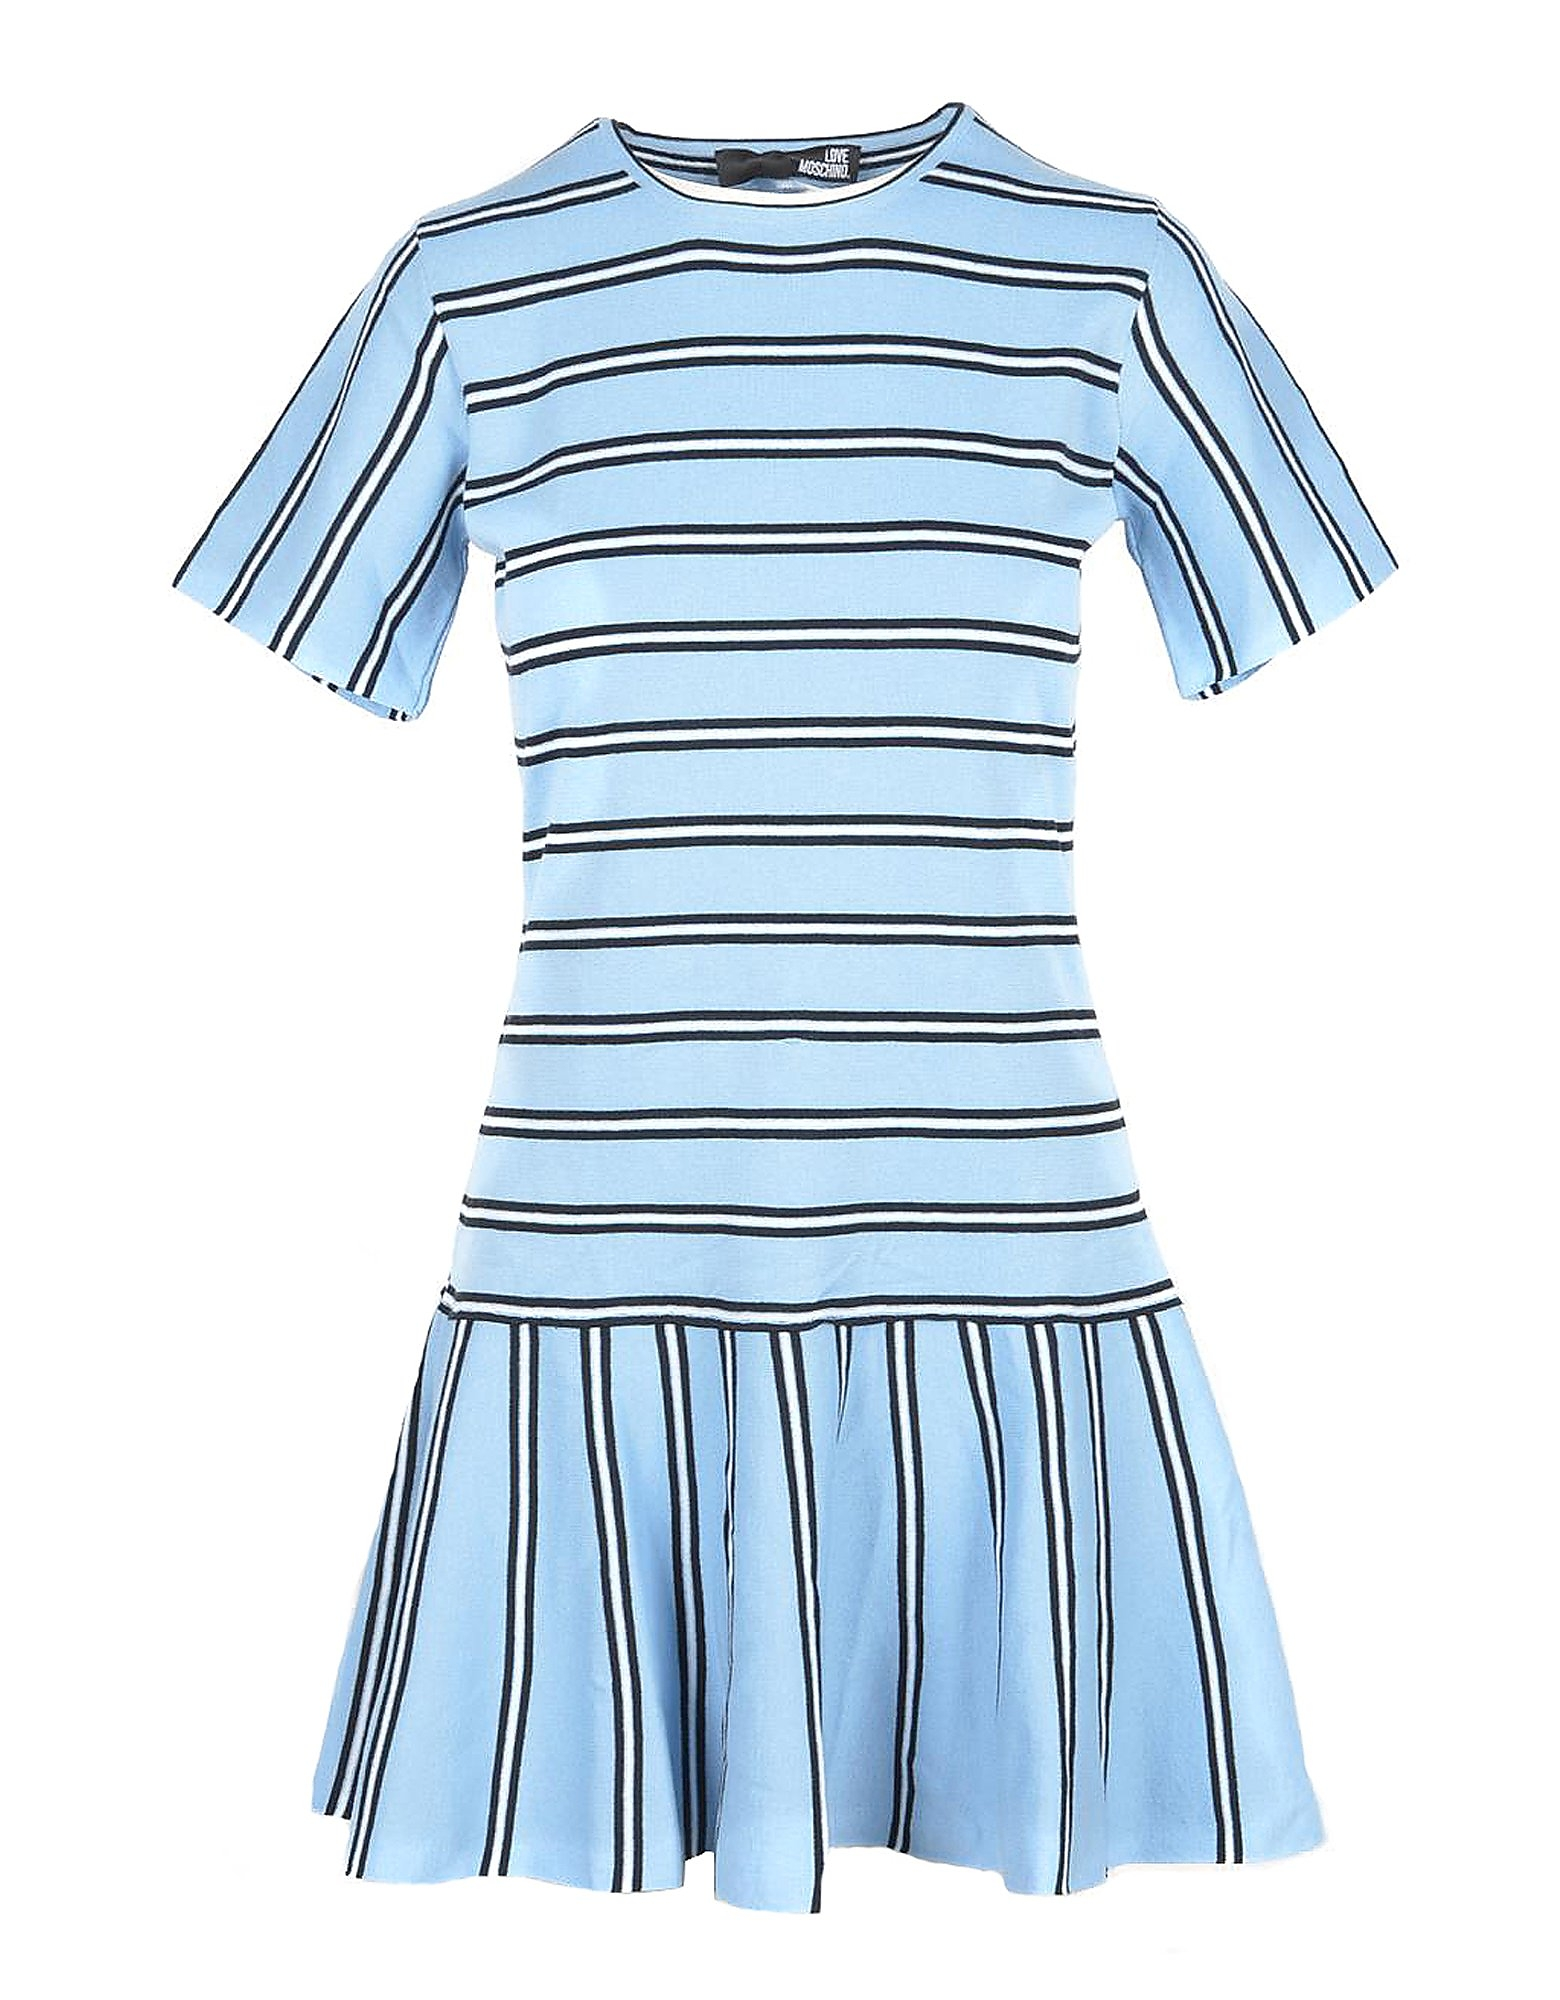 Love Moschino Designer Dresses & Jumpsuits, Women's Sky Blue Dress